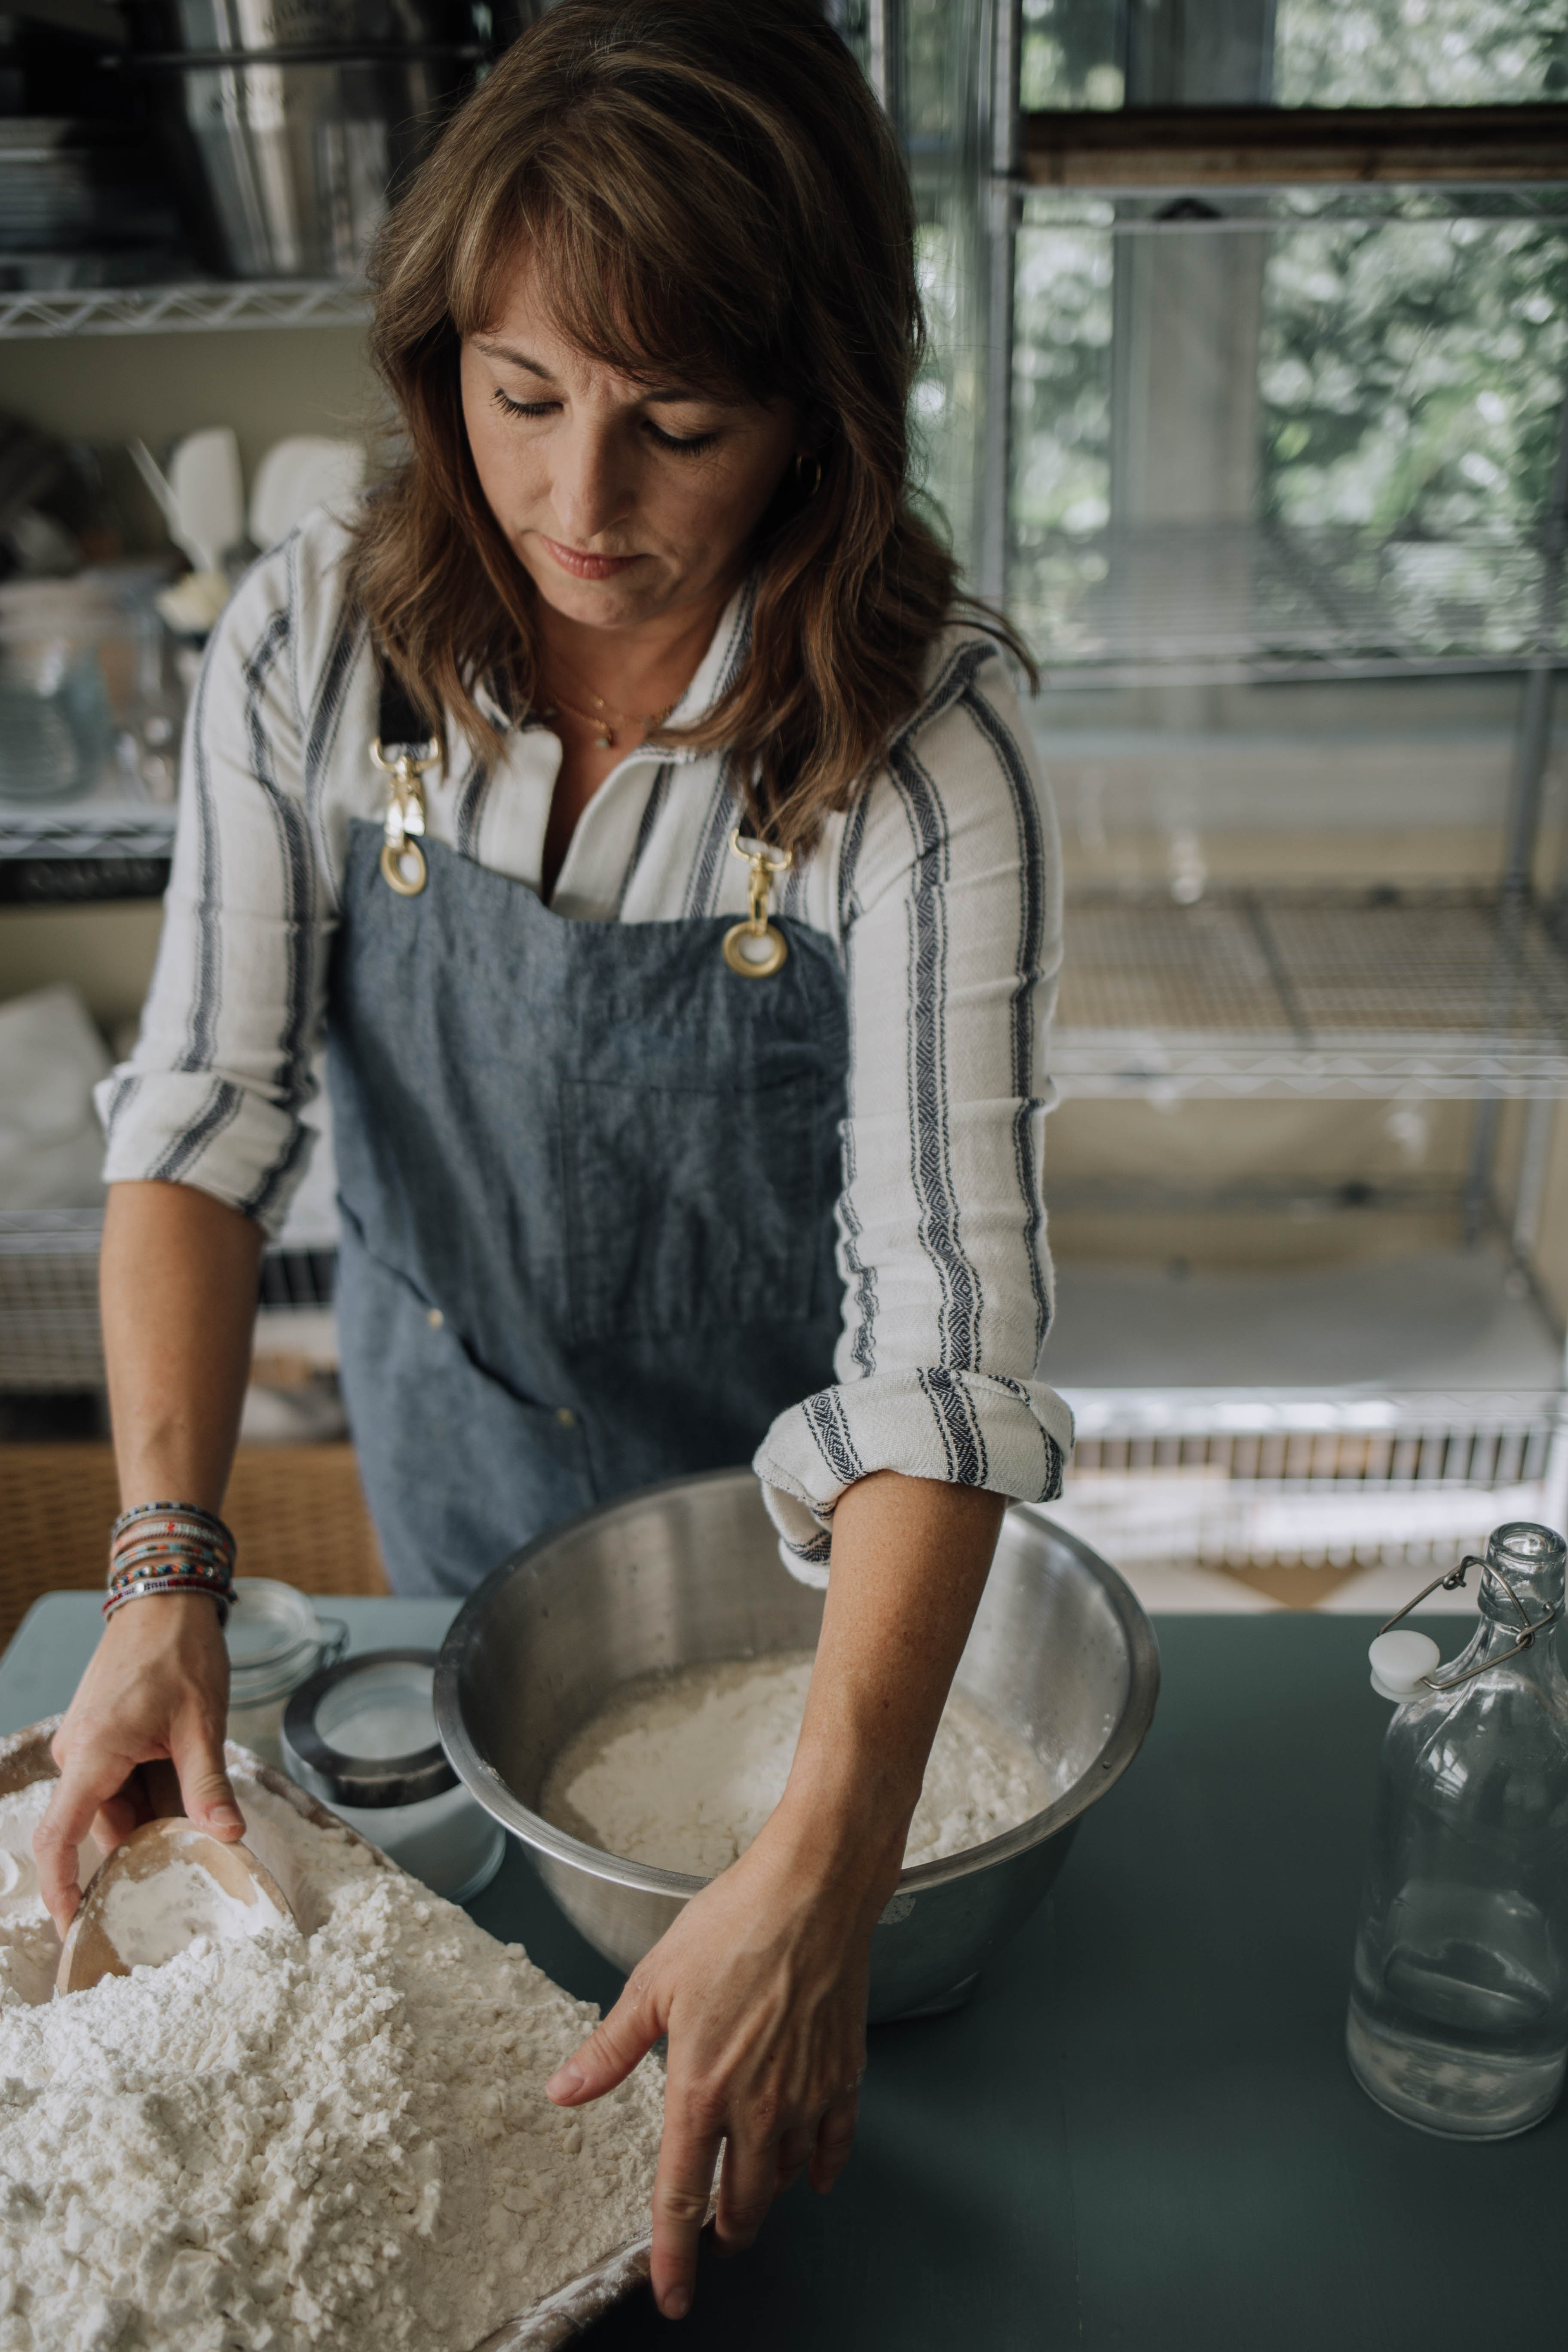 Friend demonstrates how to make dough in her Knead and Know classes{ }(Image: Courtesy Melinda Friend)